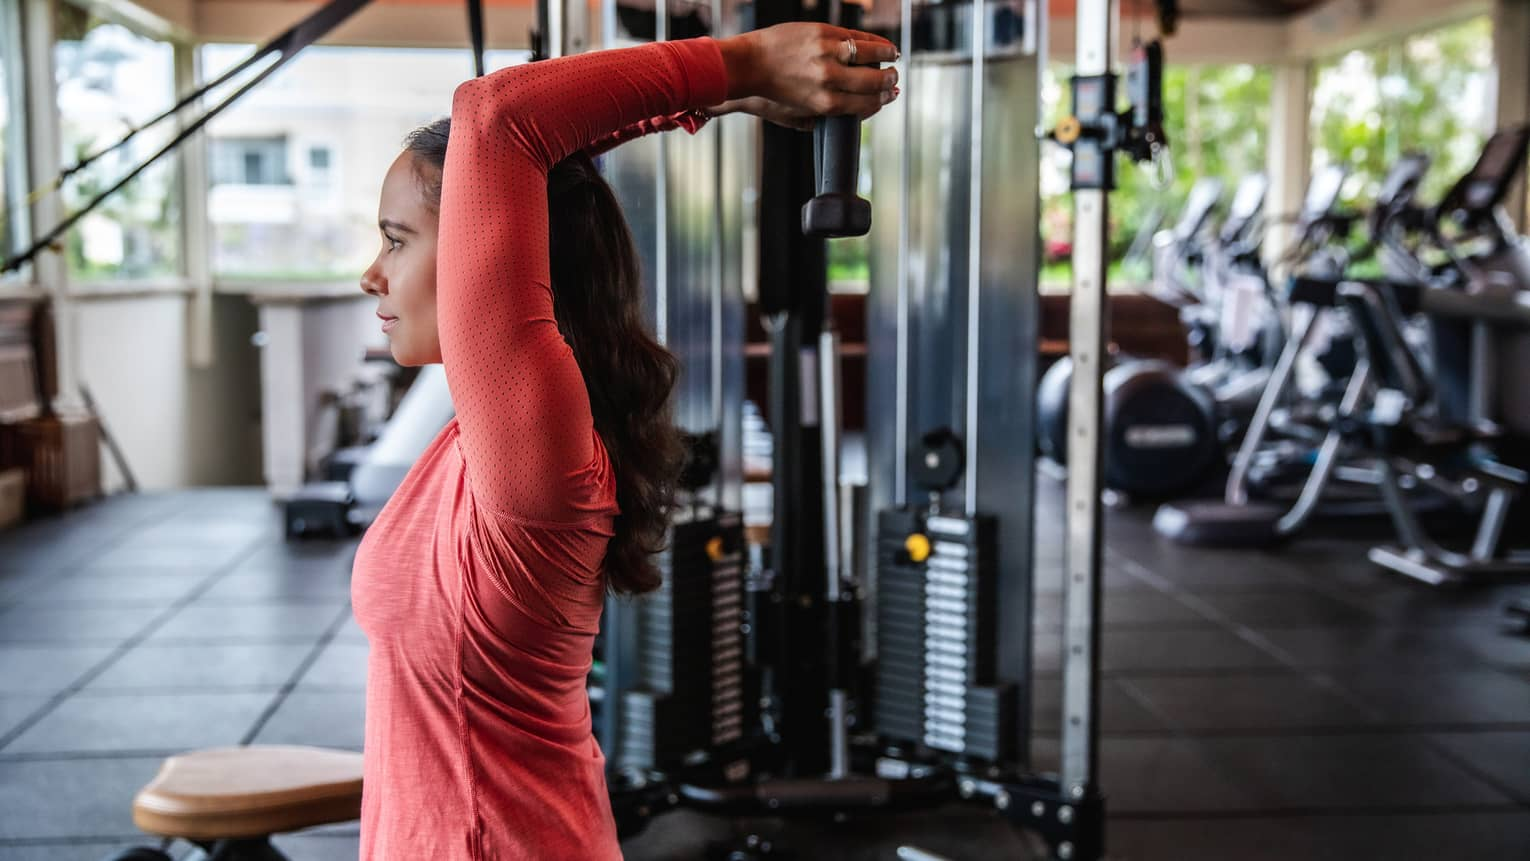 A woman lifts wights above her head at the gym